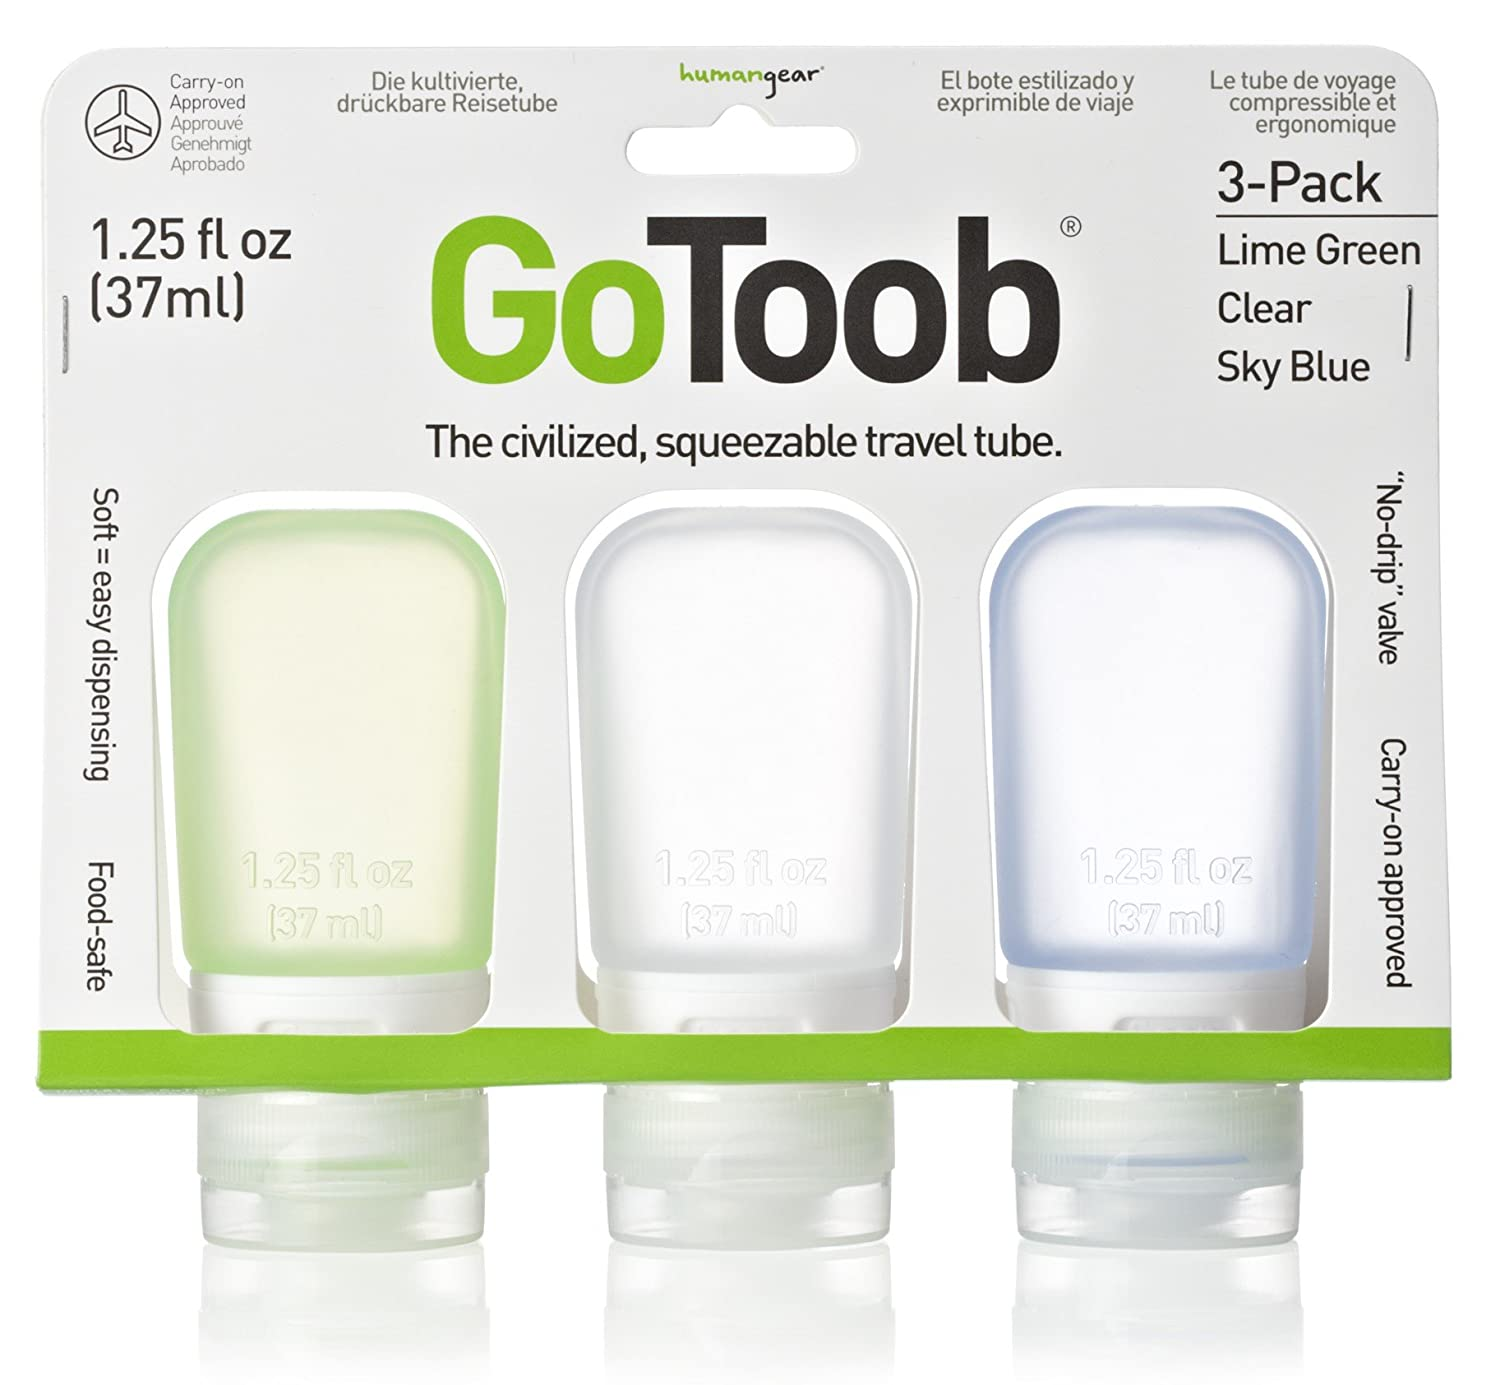 HumanGear GoToob, 1.25-Ounce, Small, 3-pack, lime green, clear, sky blue, HG0181